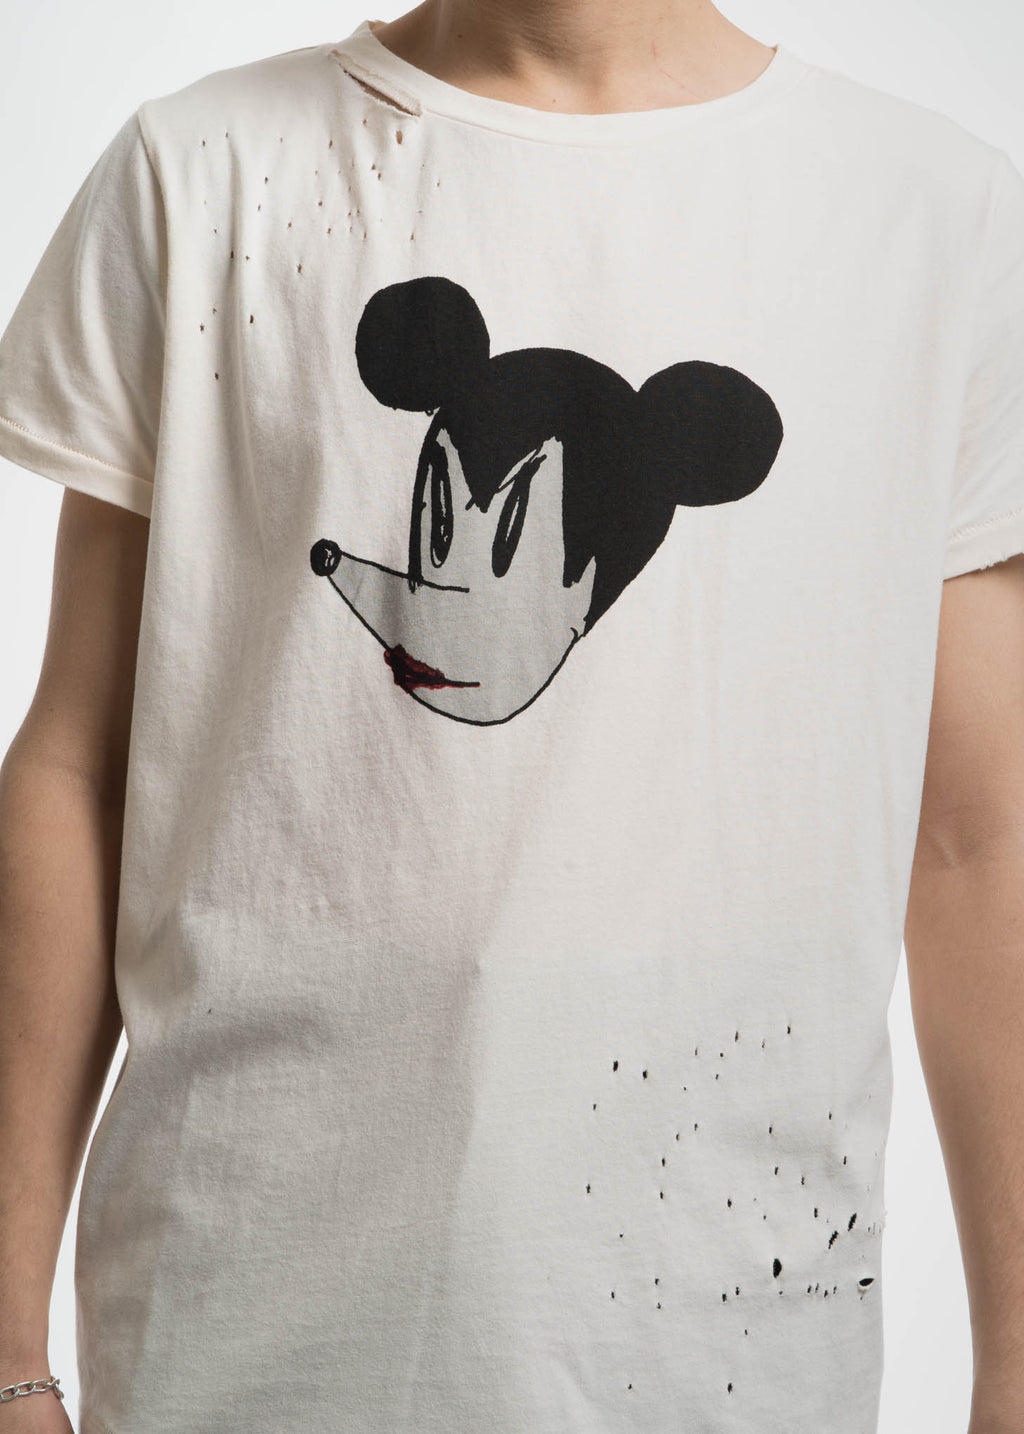 White Micky T-Shirt